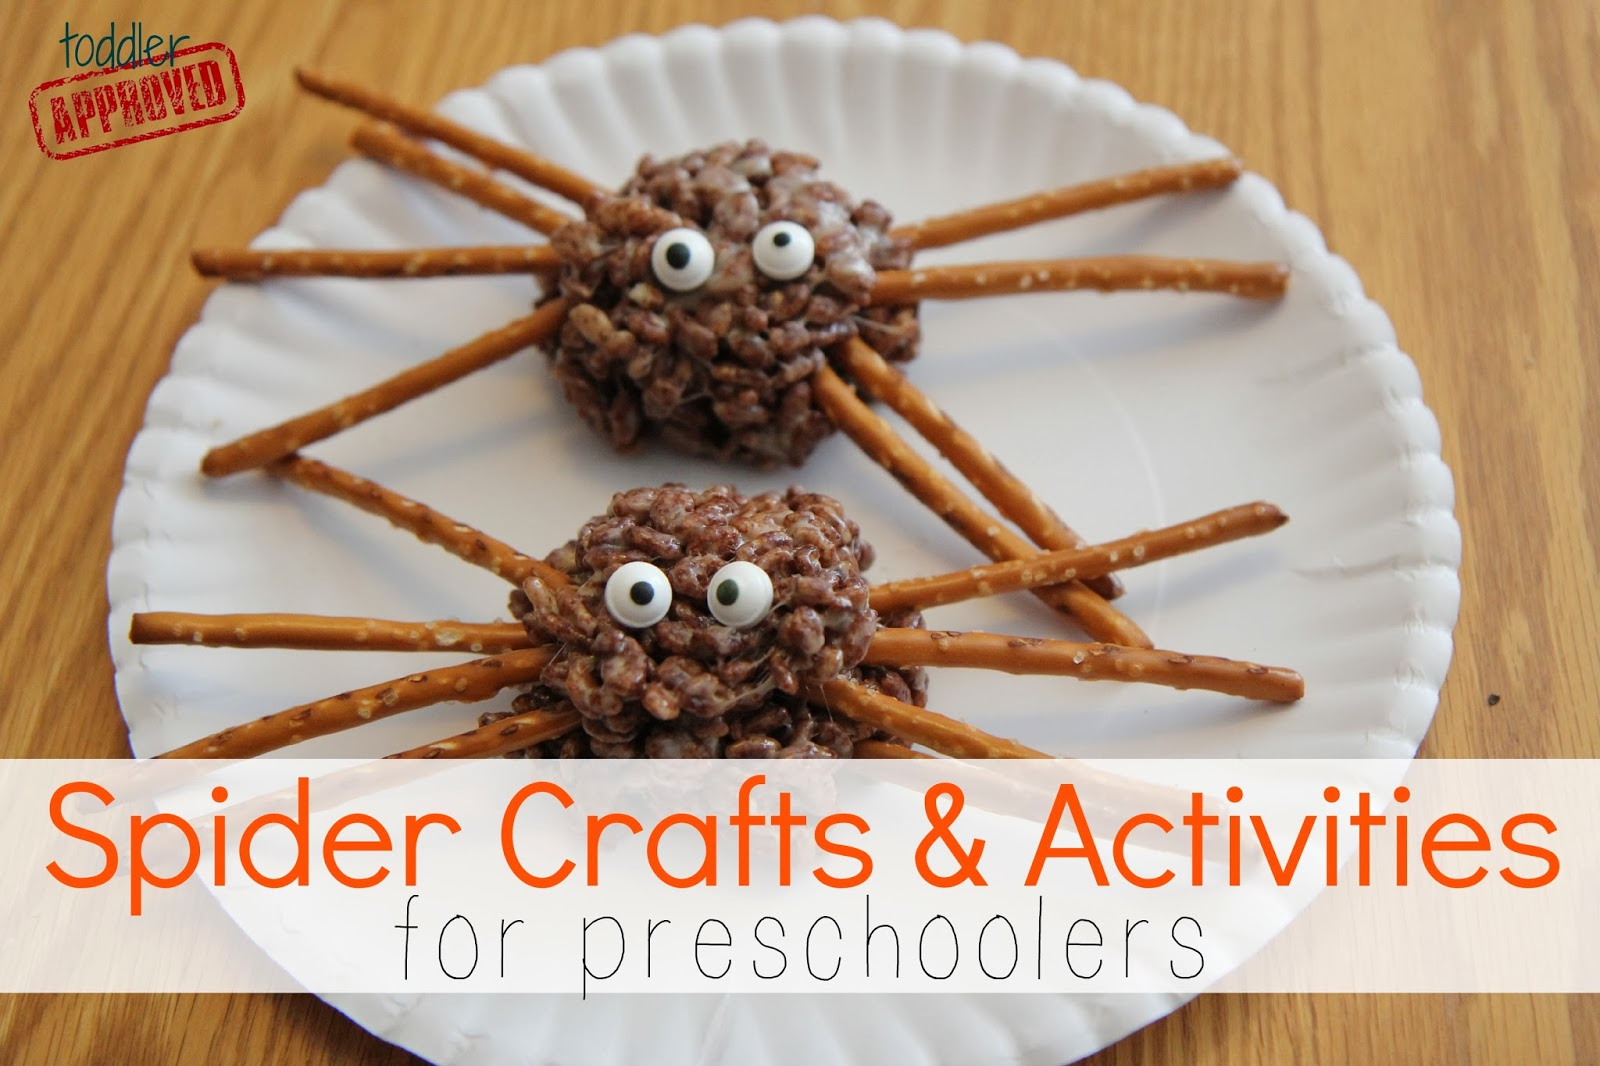 toddler approved spider crafts activities for